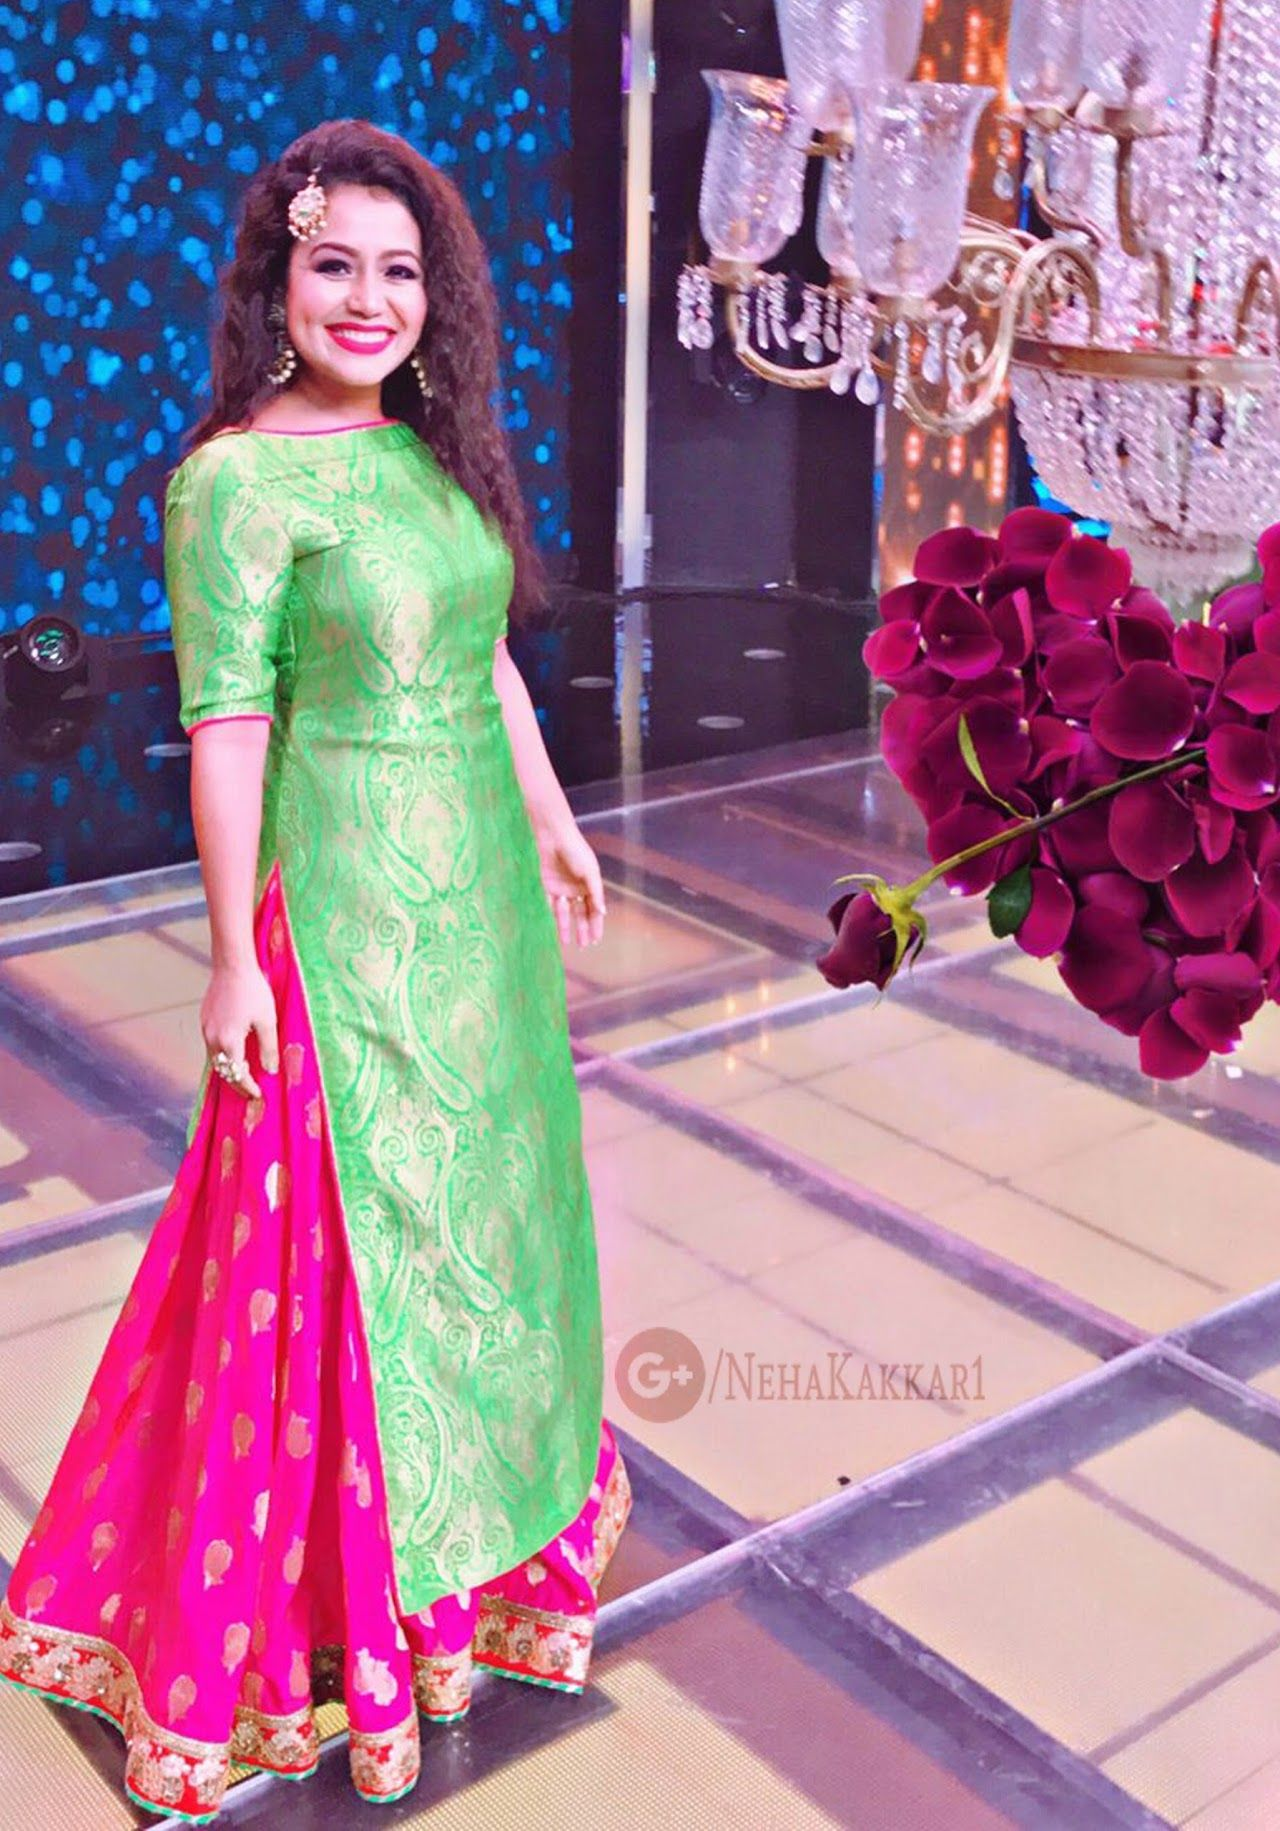 Pink dress to wear to a wedding  Pin by Pam Kaur on Indian fashion  Pinterest  Neha kakkar Eid and